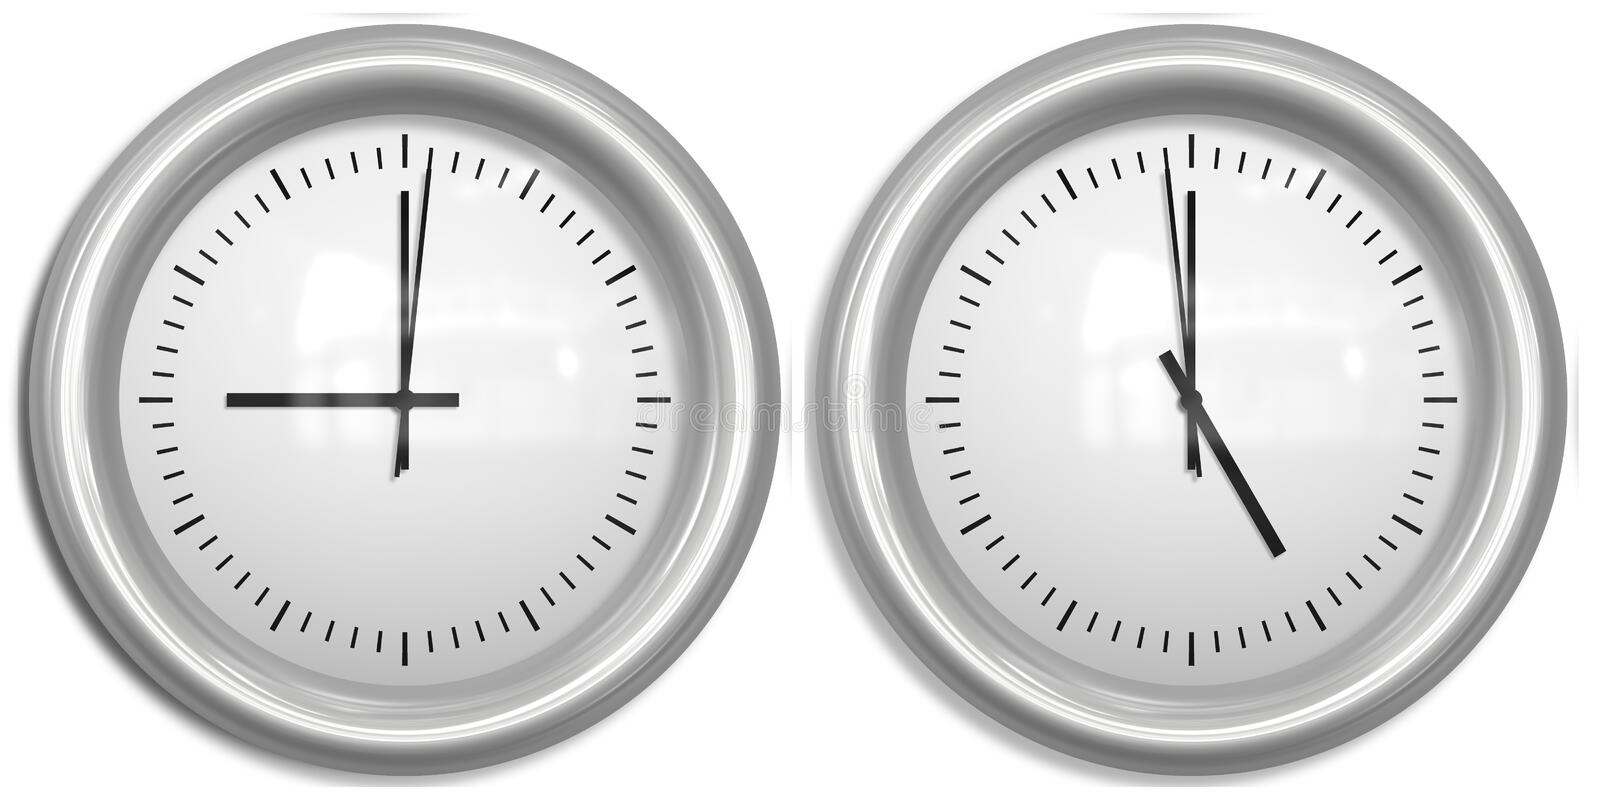 Nine to five two clocks. Two clocks showing nine to five office hours royalty free illustration